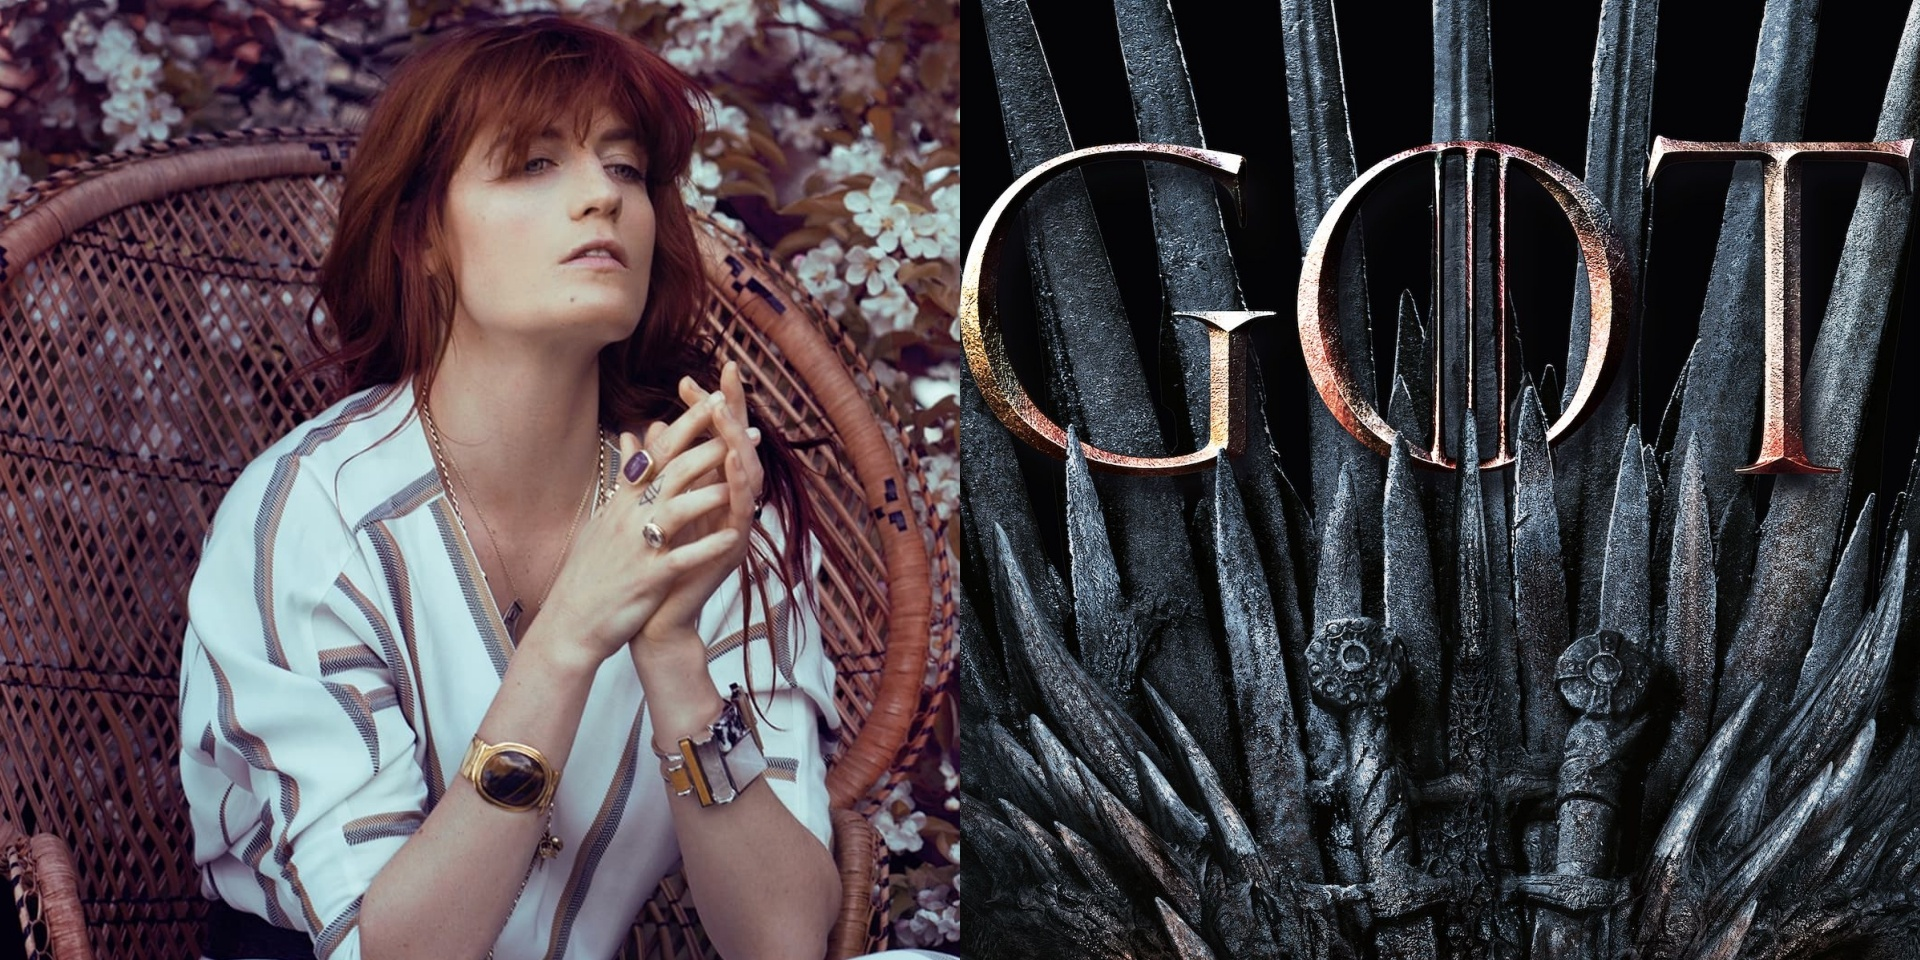 Florence + The Machine premiere enchanting lullaby 'Jenny Of Oldstones' on Game Of Thrones – listen